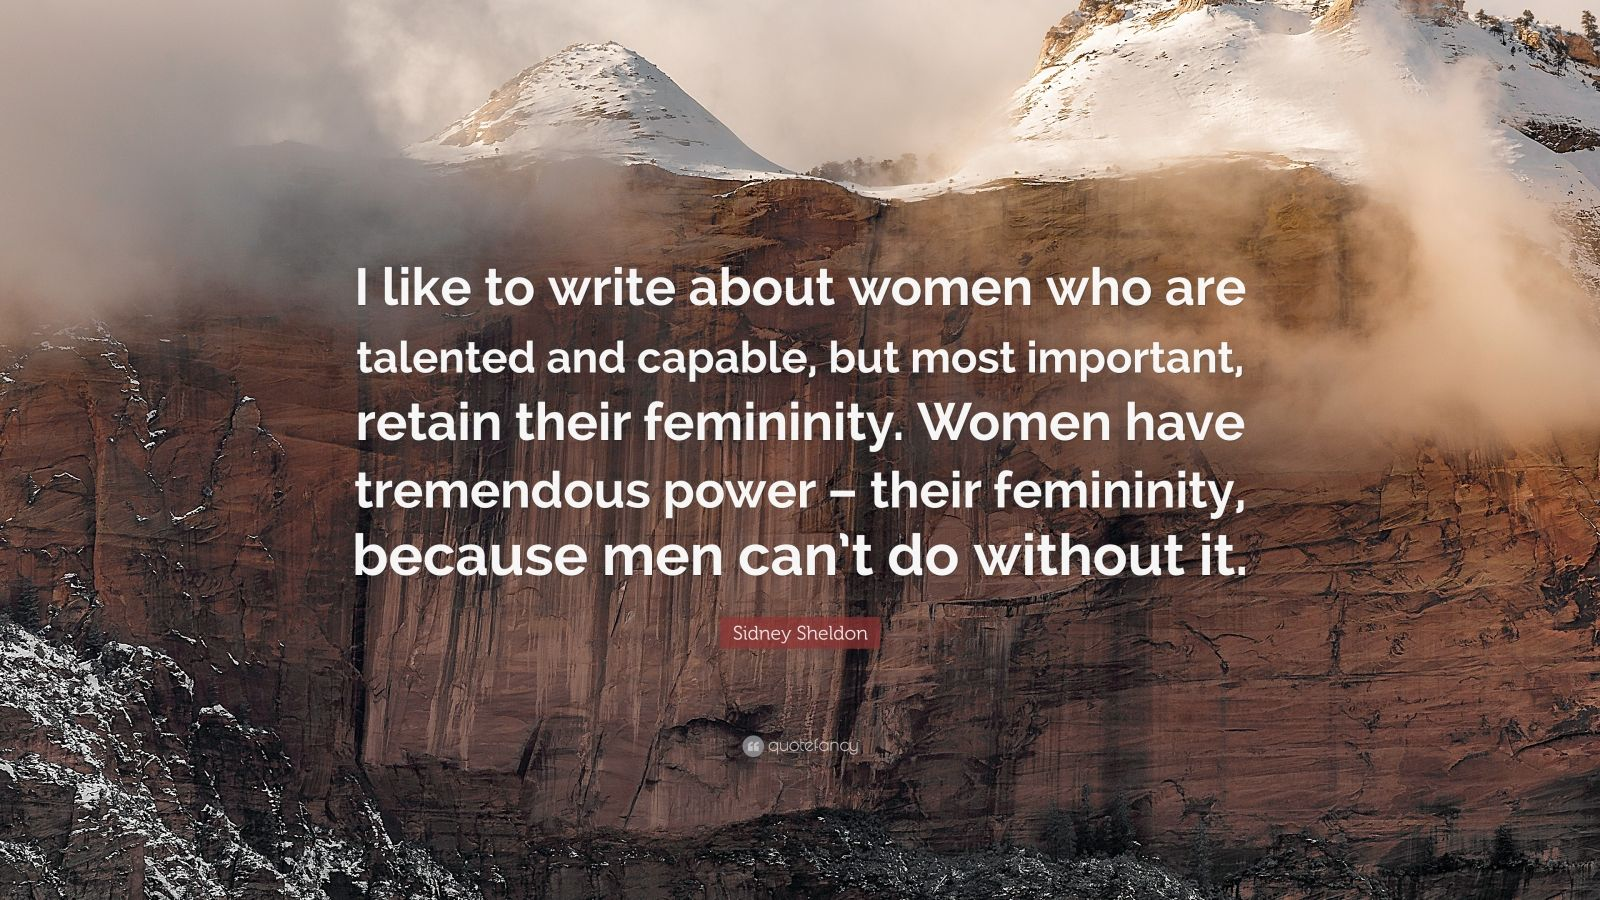 """Sidney Sheldon Quote: """"I like to write about women who are talented and capable, but most important, retain their femininity. Women have tremendous power – their femininity, because men can't do without it."""""""